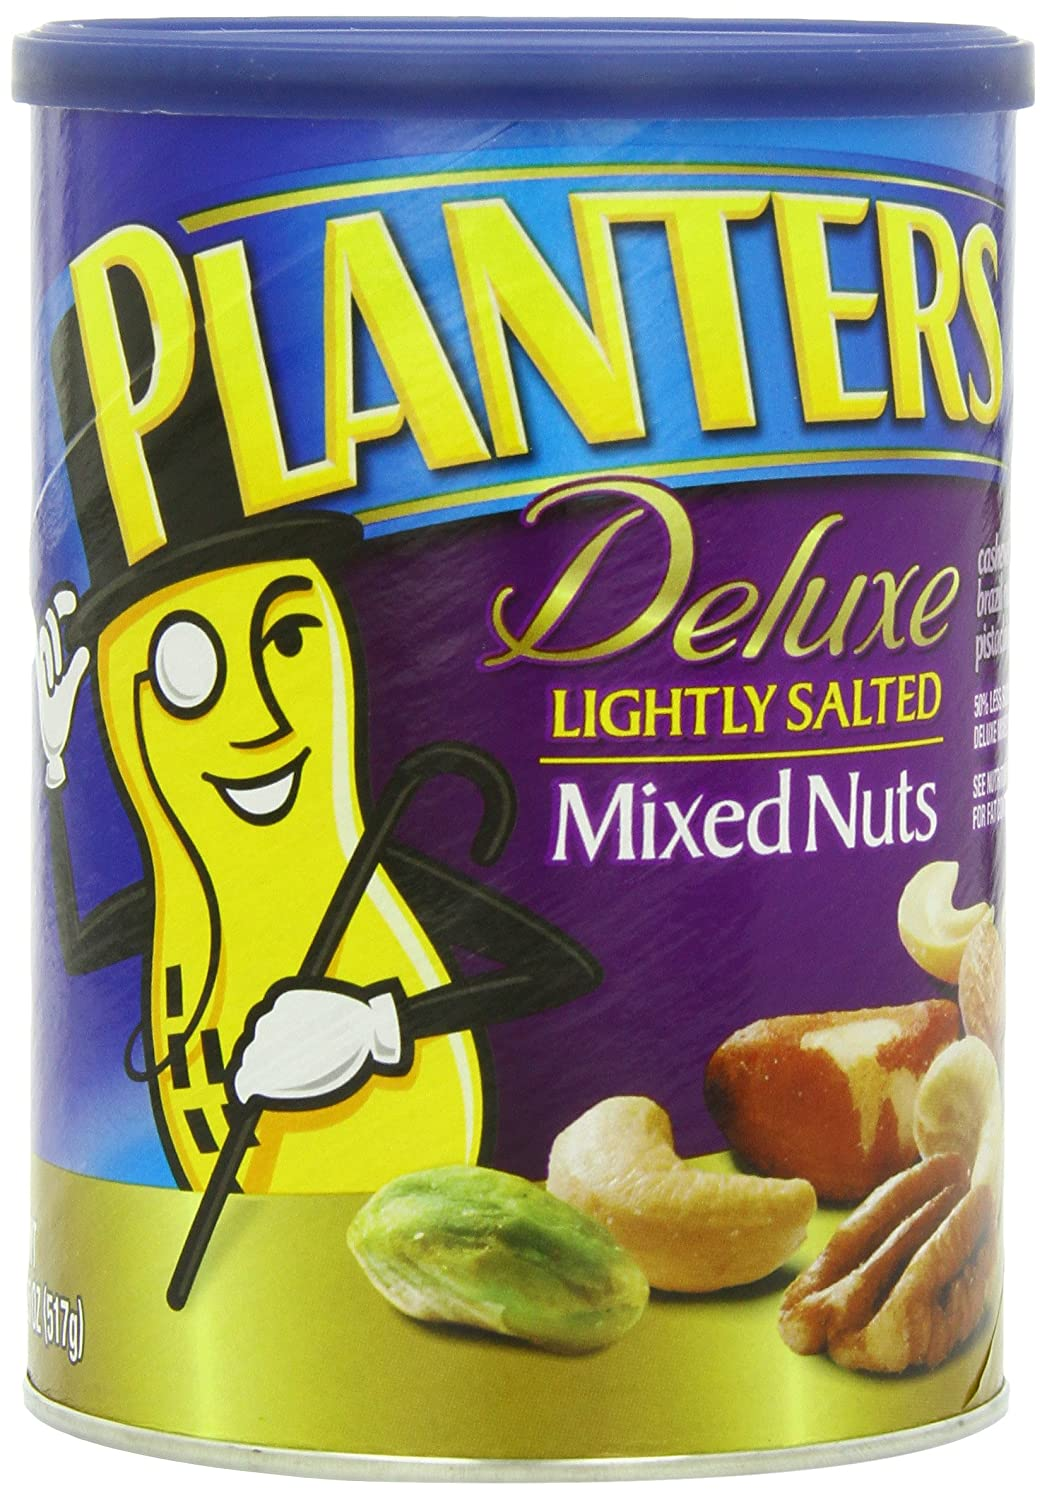 Planters Mixed Nuts, Lightly Salted Deluxe Mixed Nuts, 18.25 Ounce on planters salted peanuts, planters unsalted nuts, planters tube nuts, planters dry roasted peanuts,